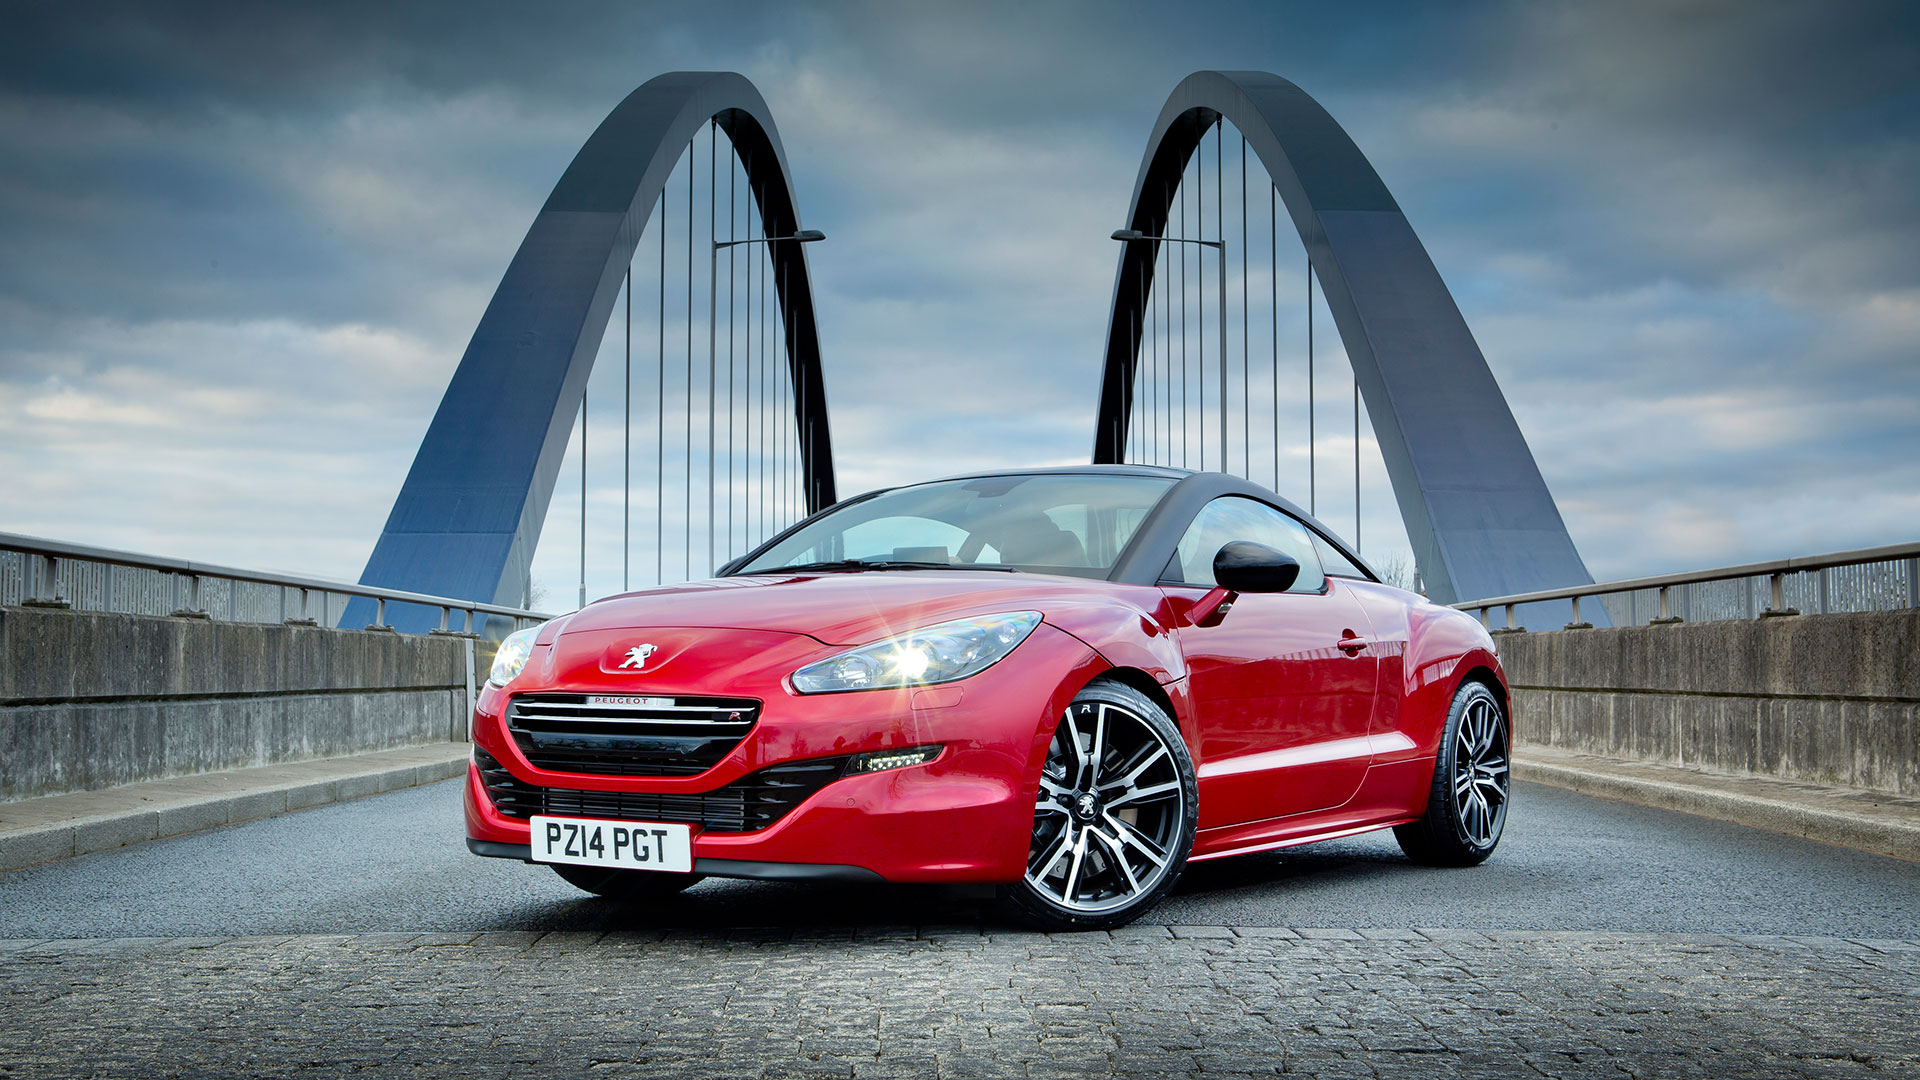 New Used Peugeot Rcz Cars For Sale Auto Trader